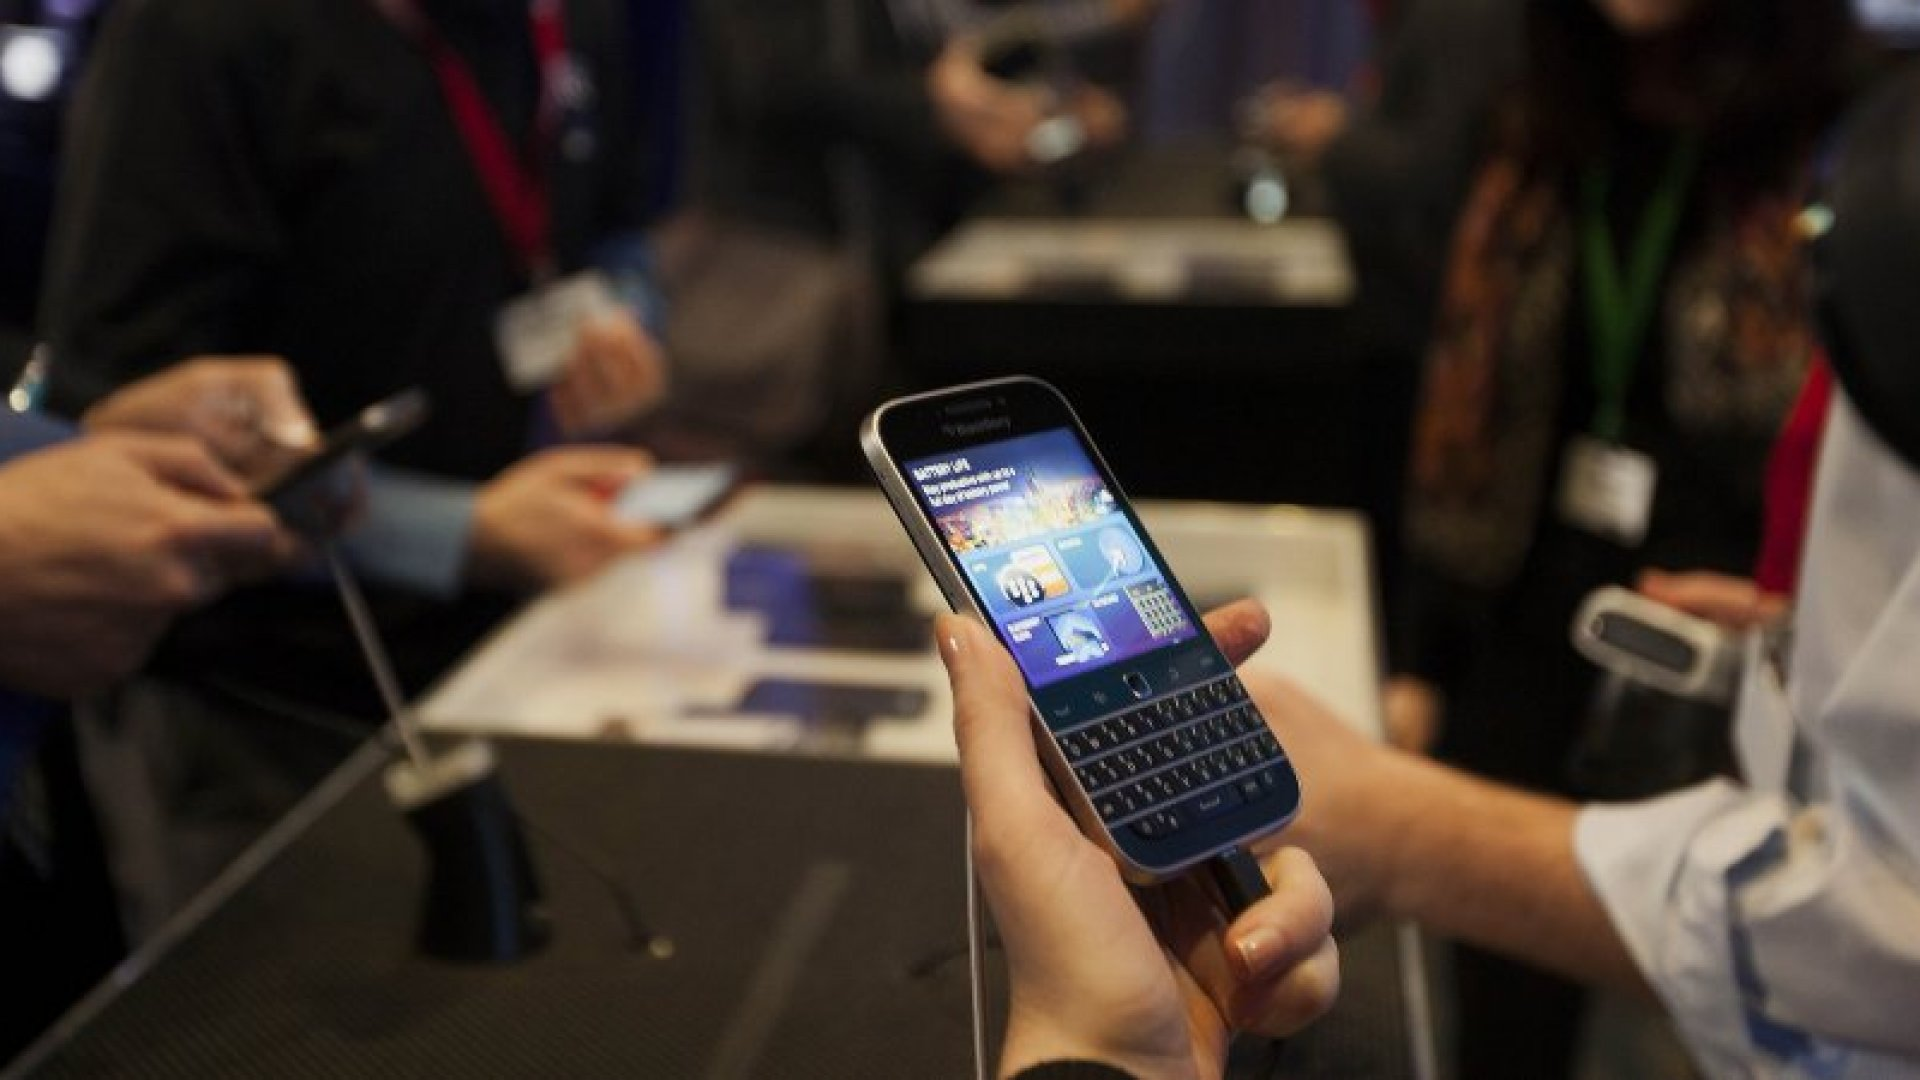 Ex-BlackBerry Co-CEO Speaks Out on Company Missteps